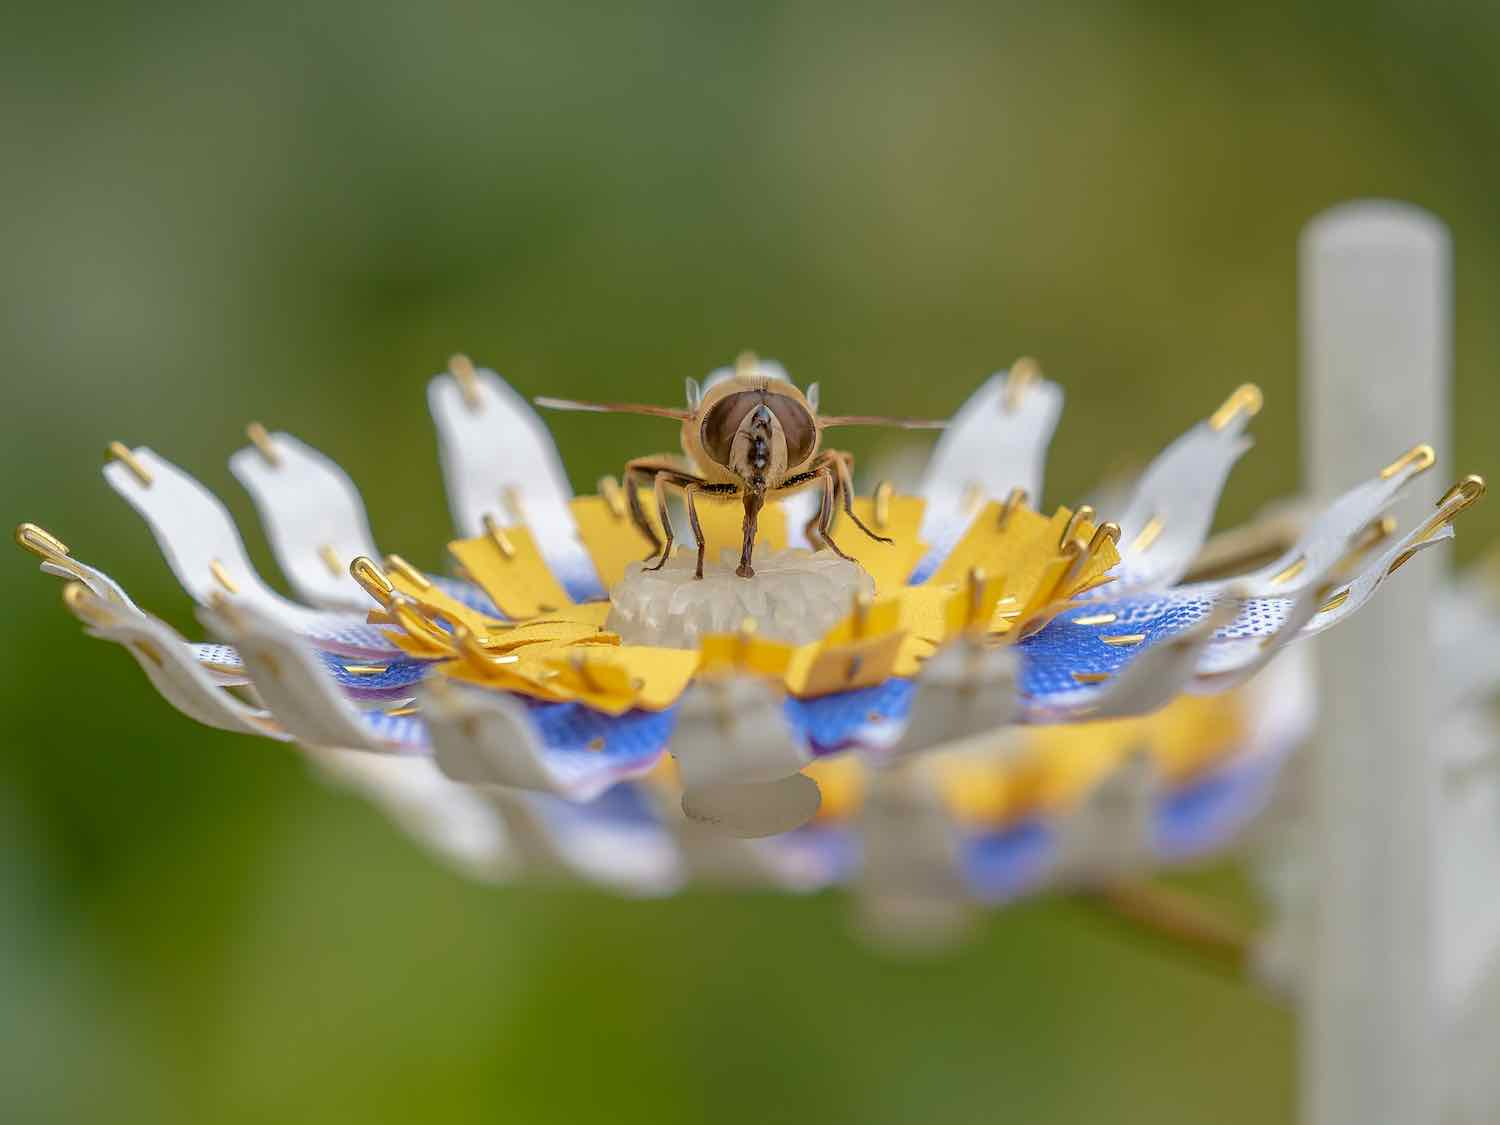 Insectology: Food for Buzz - Photo by Atelier Boelhouwer.